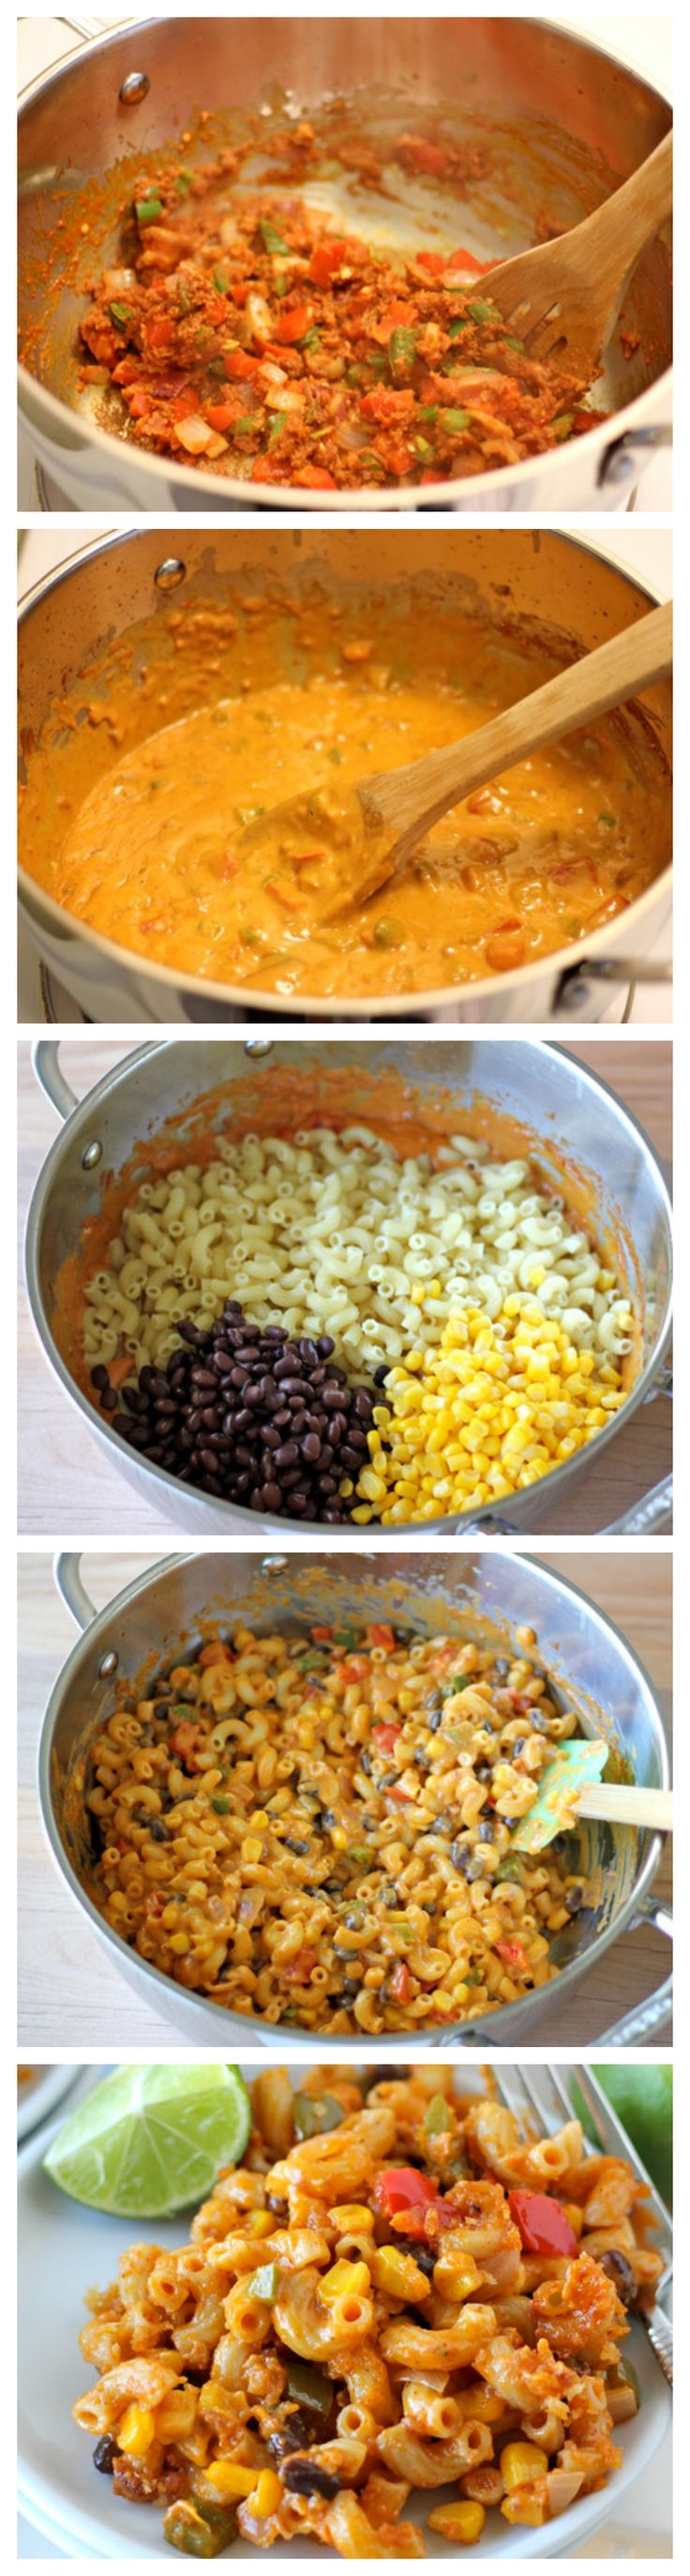 Chorizo Mac and Cheese - Mexican-style, veggie-loaded mac and cheese ...